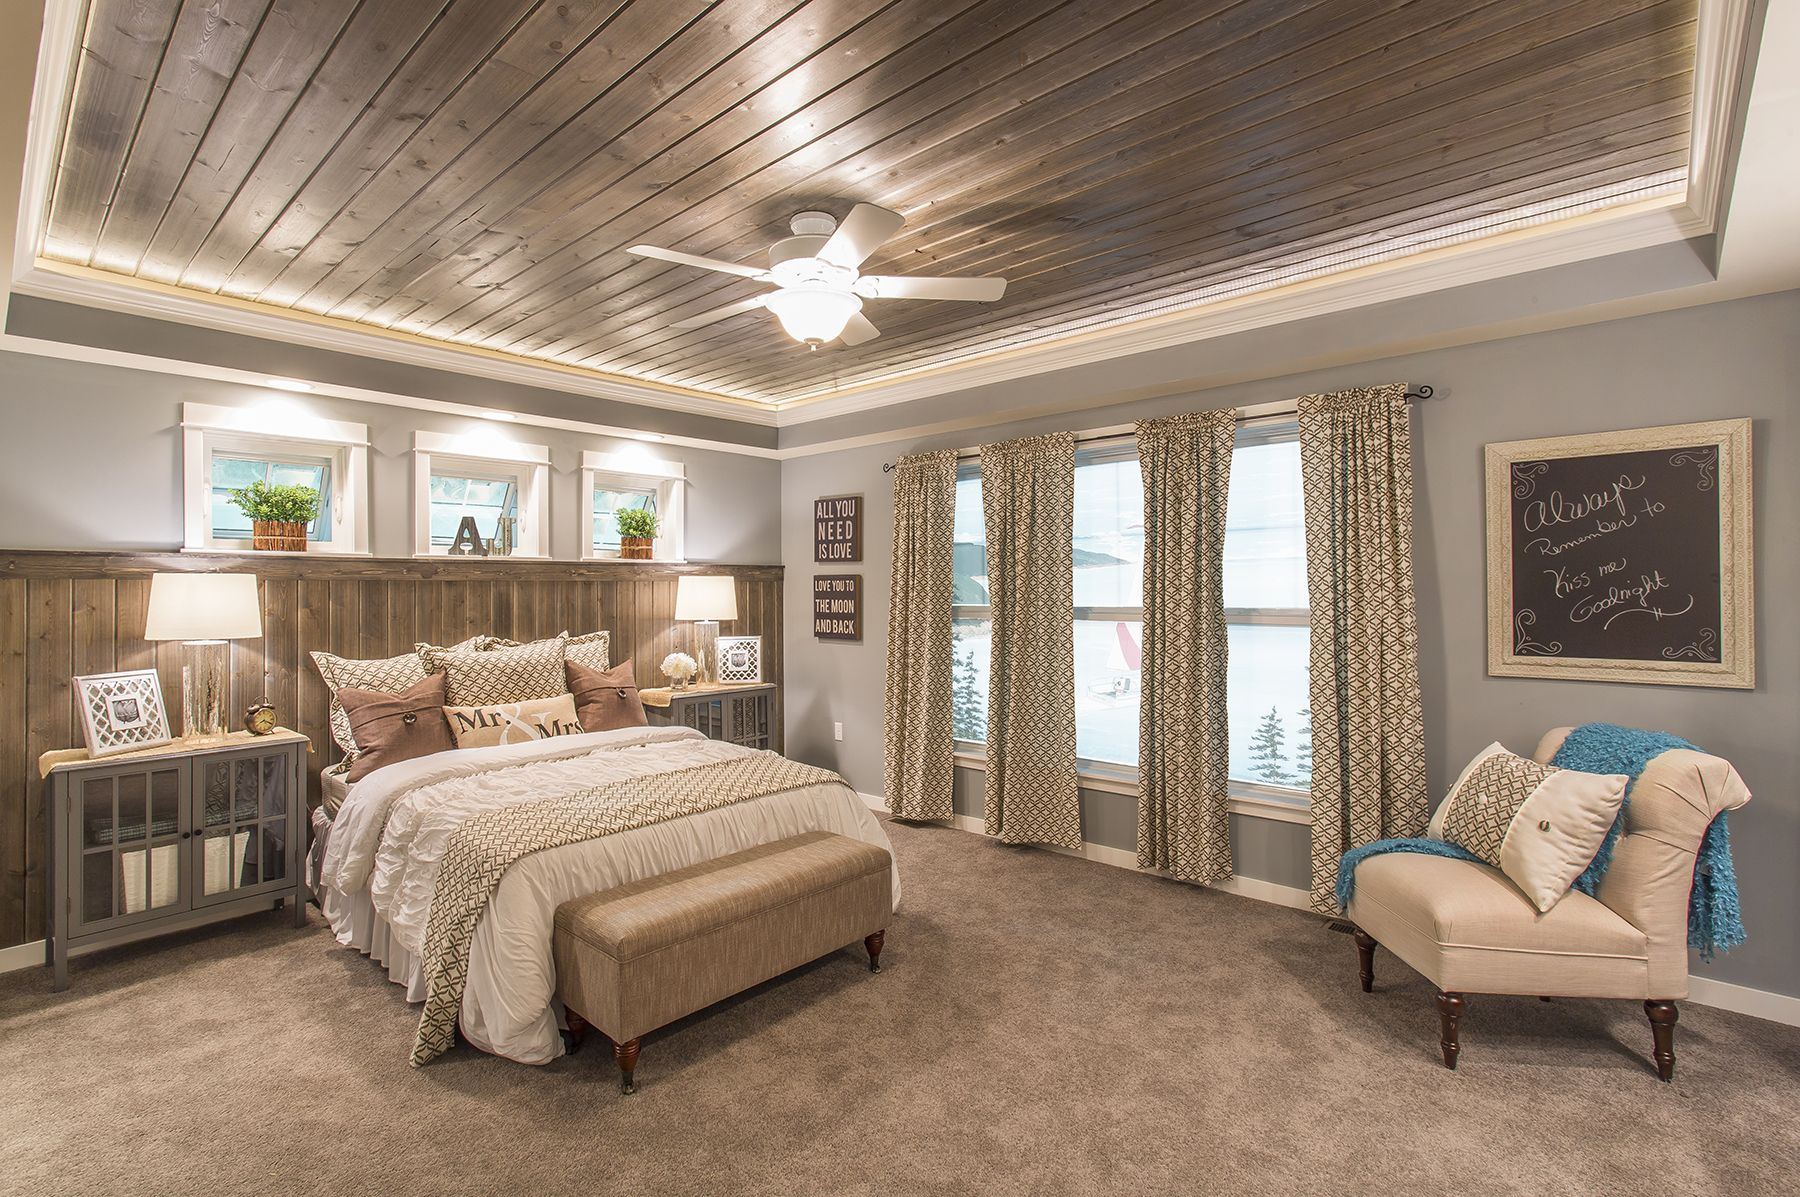 Best The Ultimate Rustic Master Suite With Wood Accents On The 400 x 300